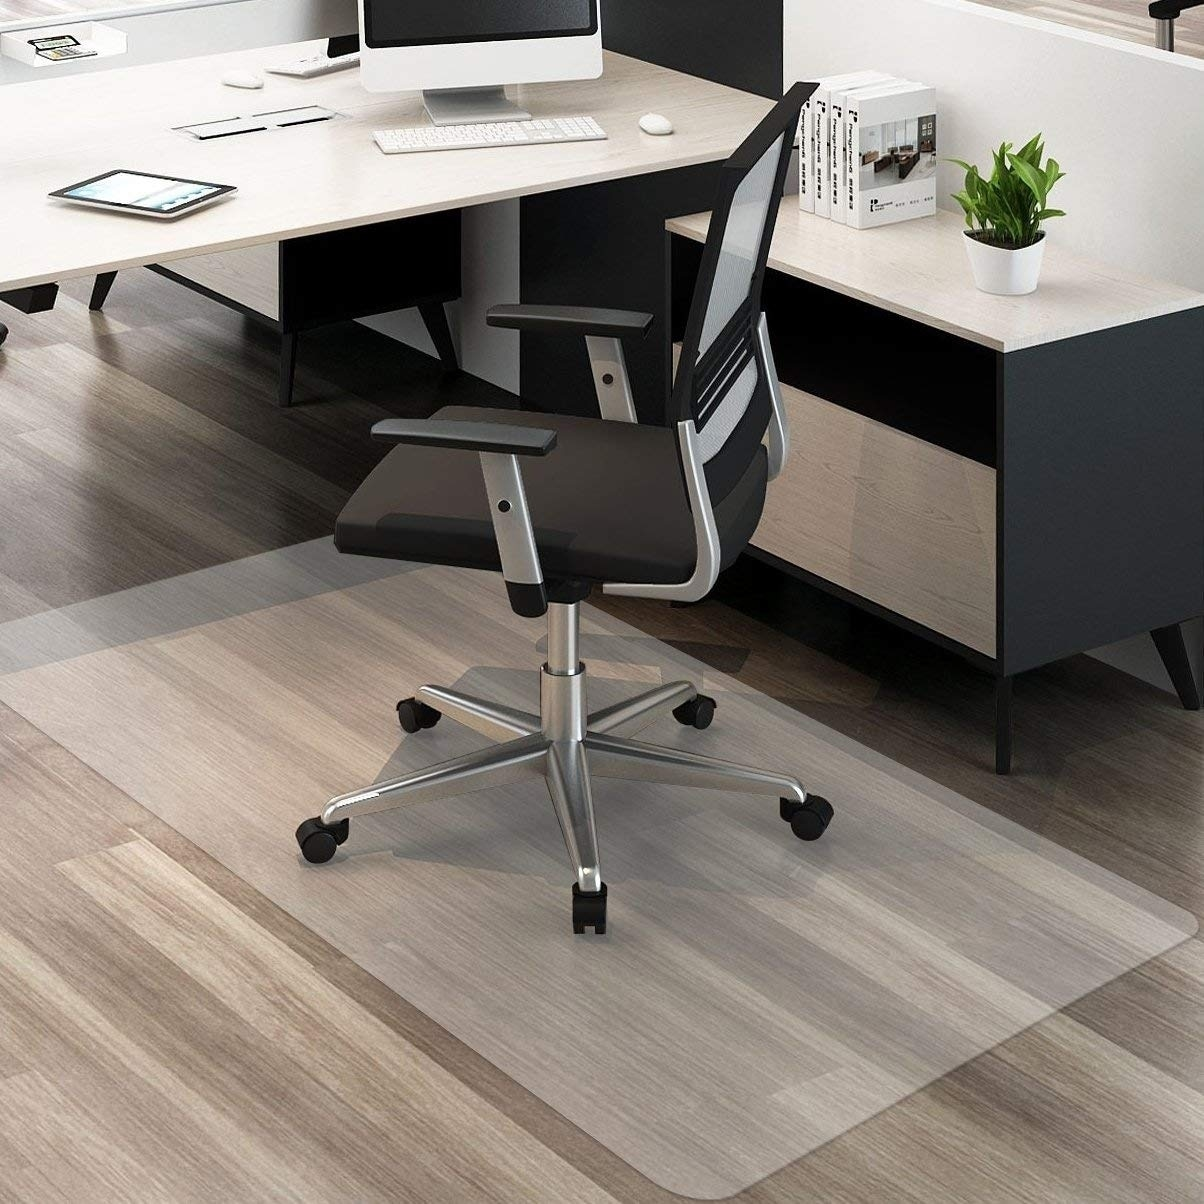 Shop Pile Protect Floor Pad Home Office Pvc Chair Mat 36 X 48 On Sale Overstock 27620965